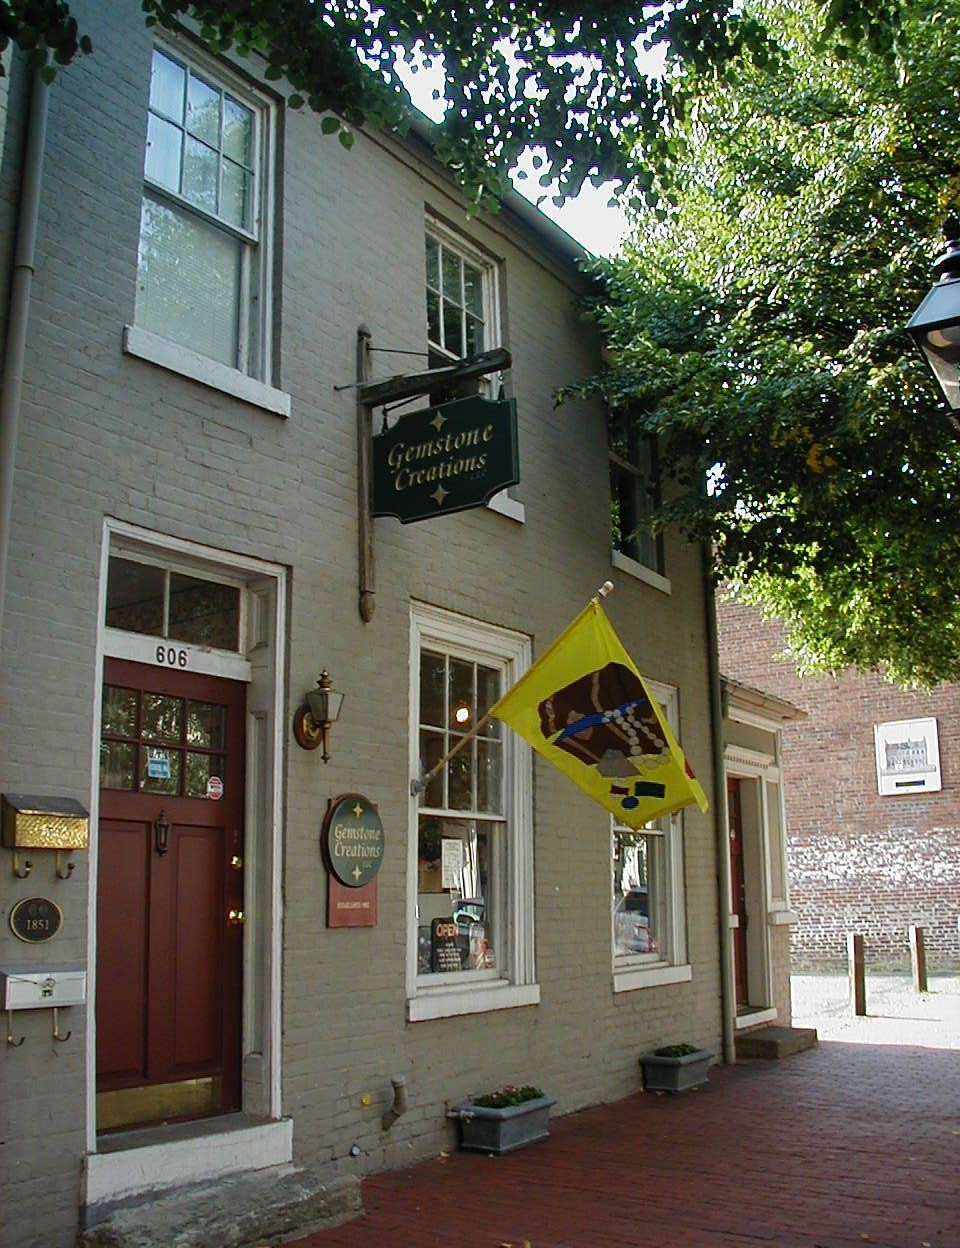 Our store an historic 1851 row house, Gemstone Creations